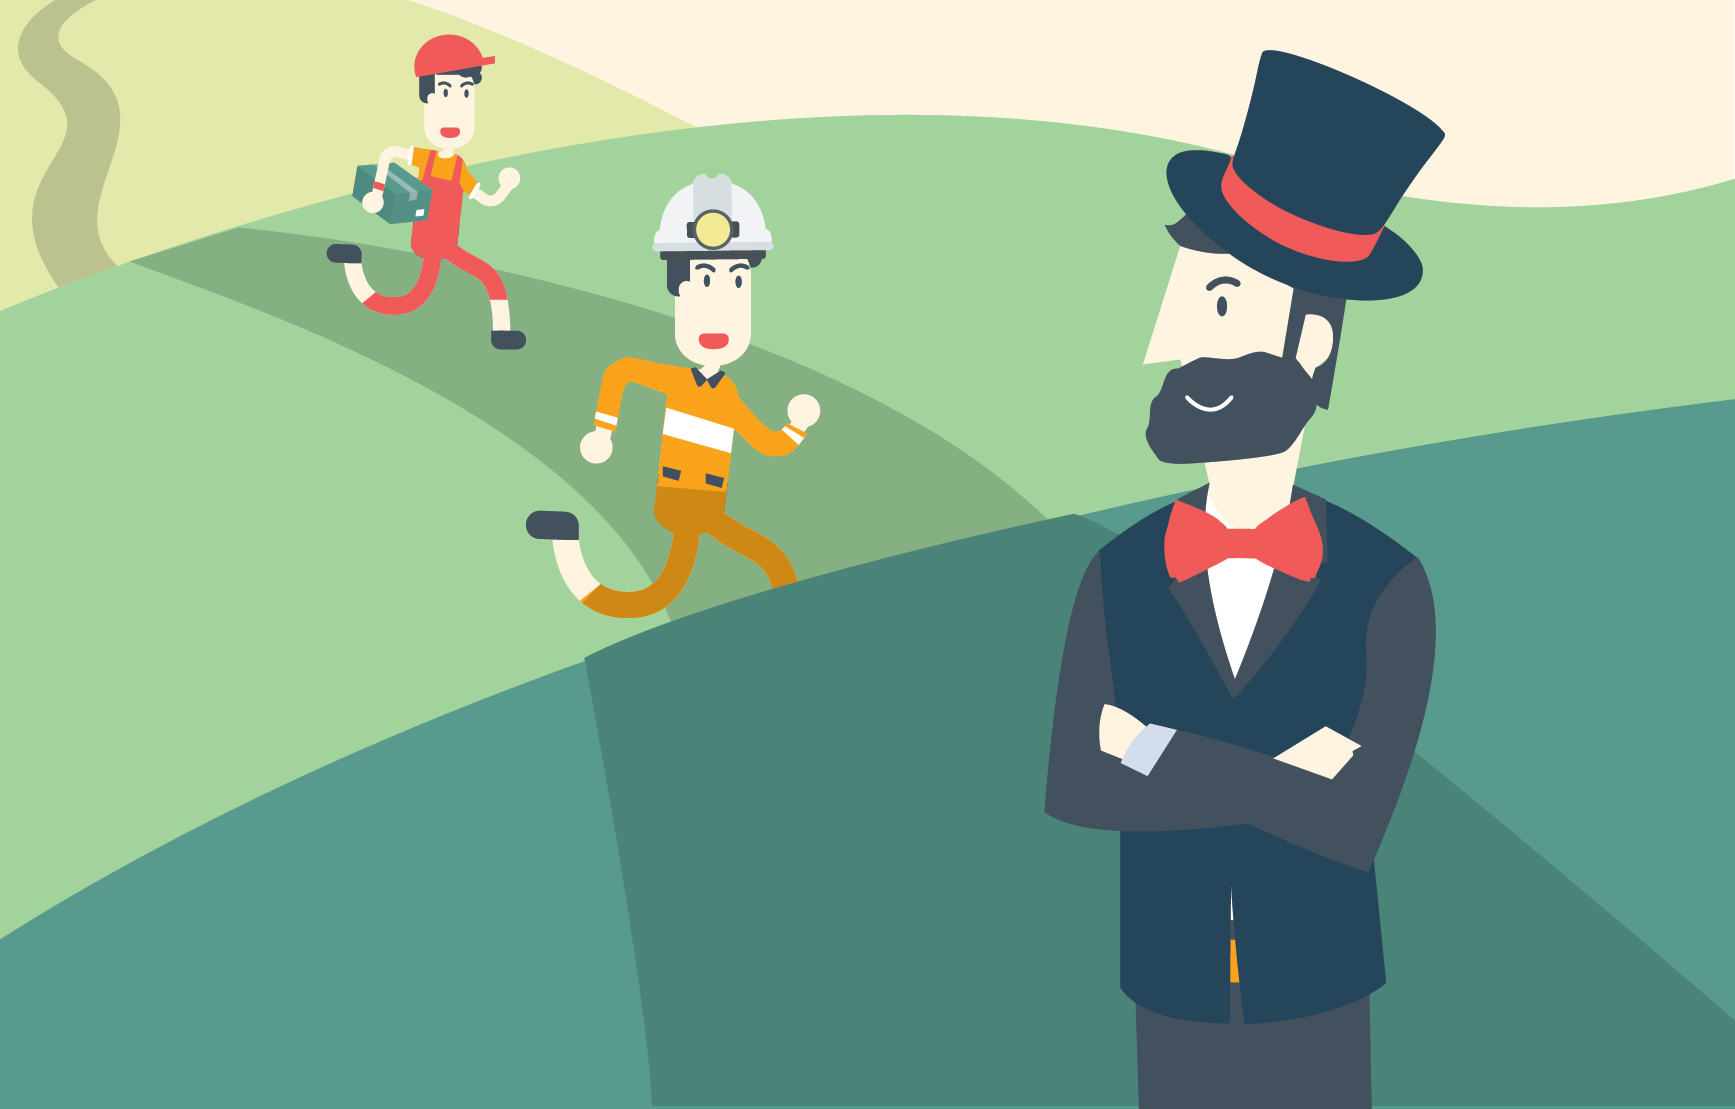 Three men are in a line on a road. One is dressed as a telegraph messenger, one as a steel worker, and one as a businessman.